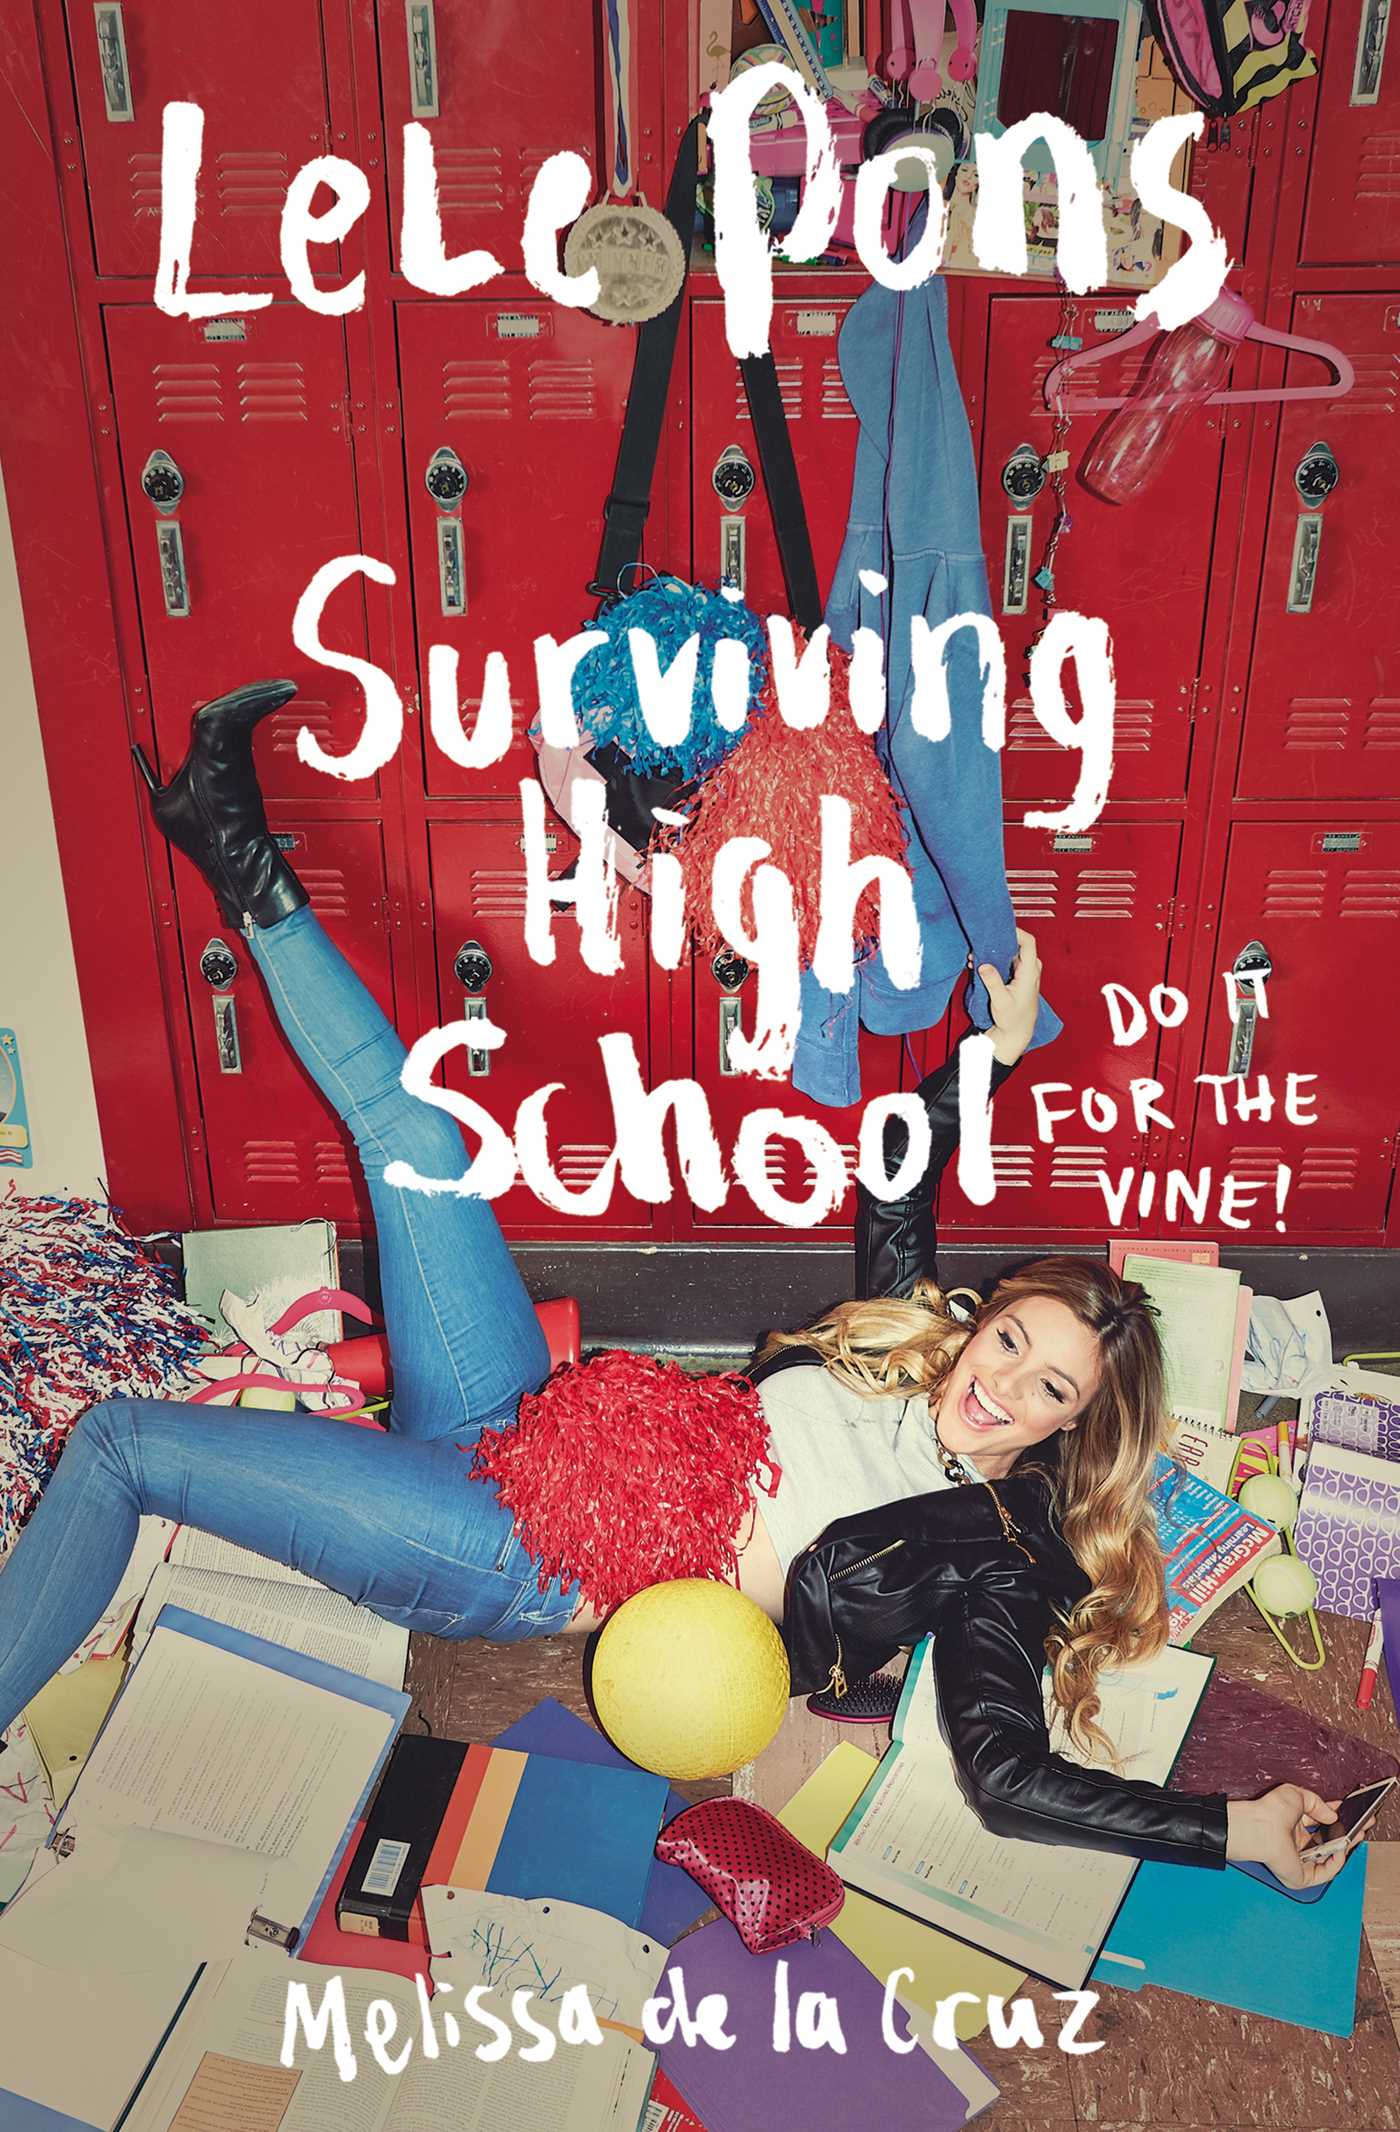 Are there any books about going into high school?